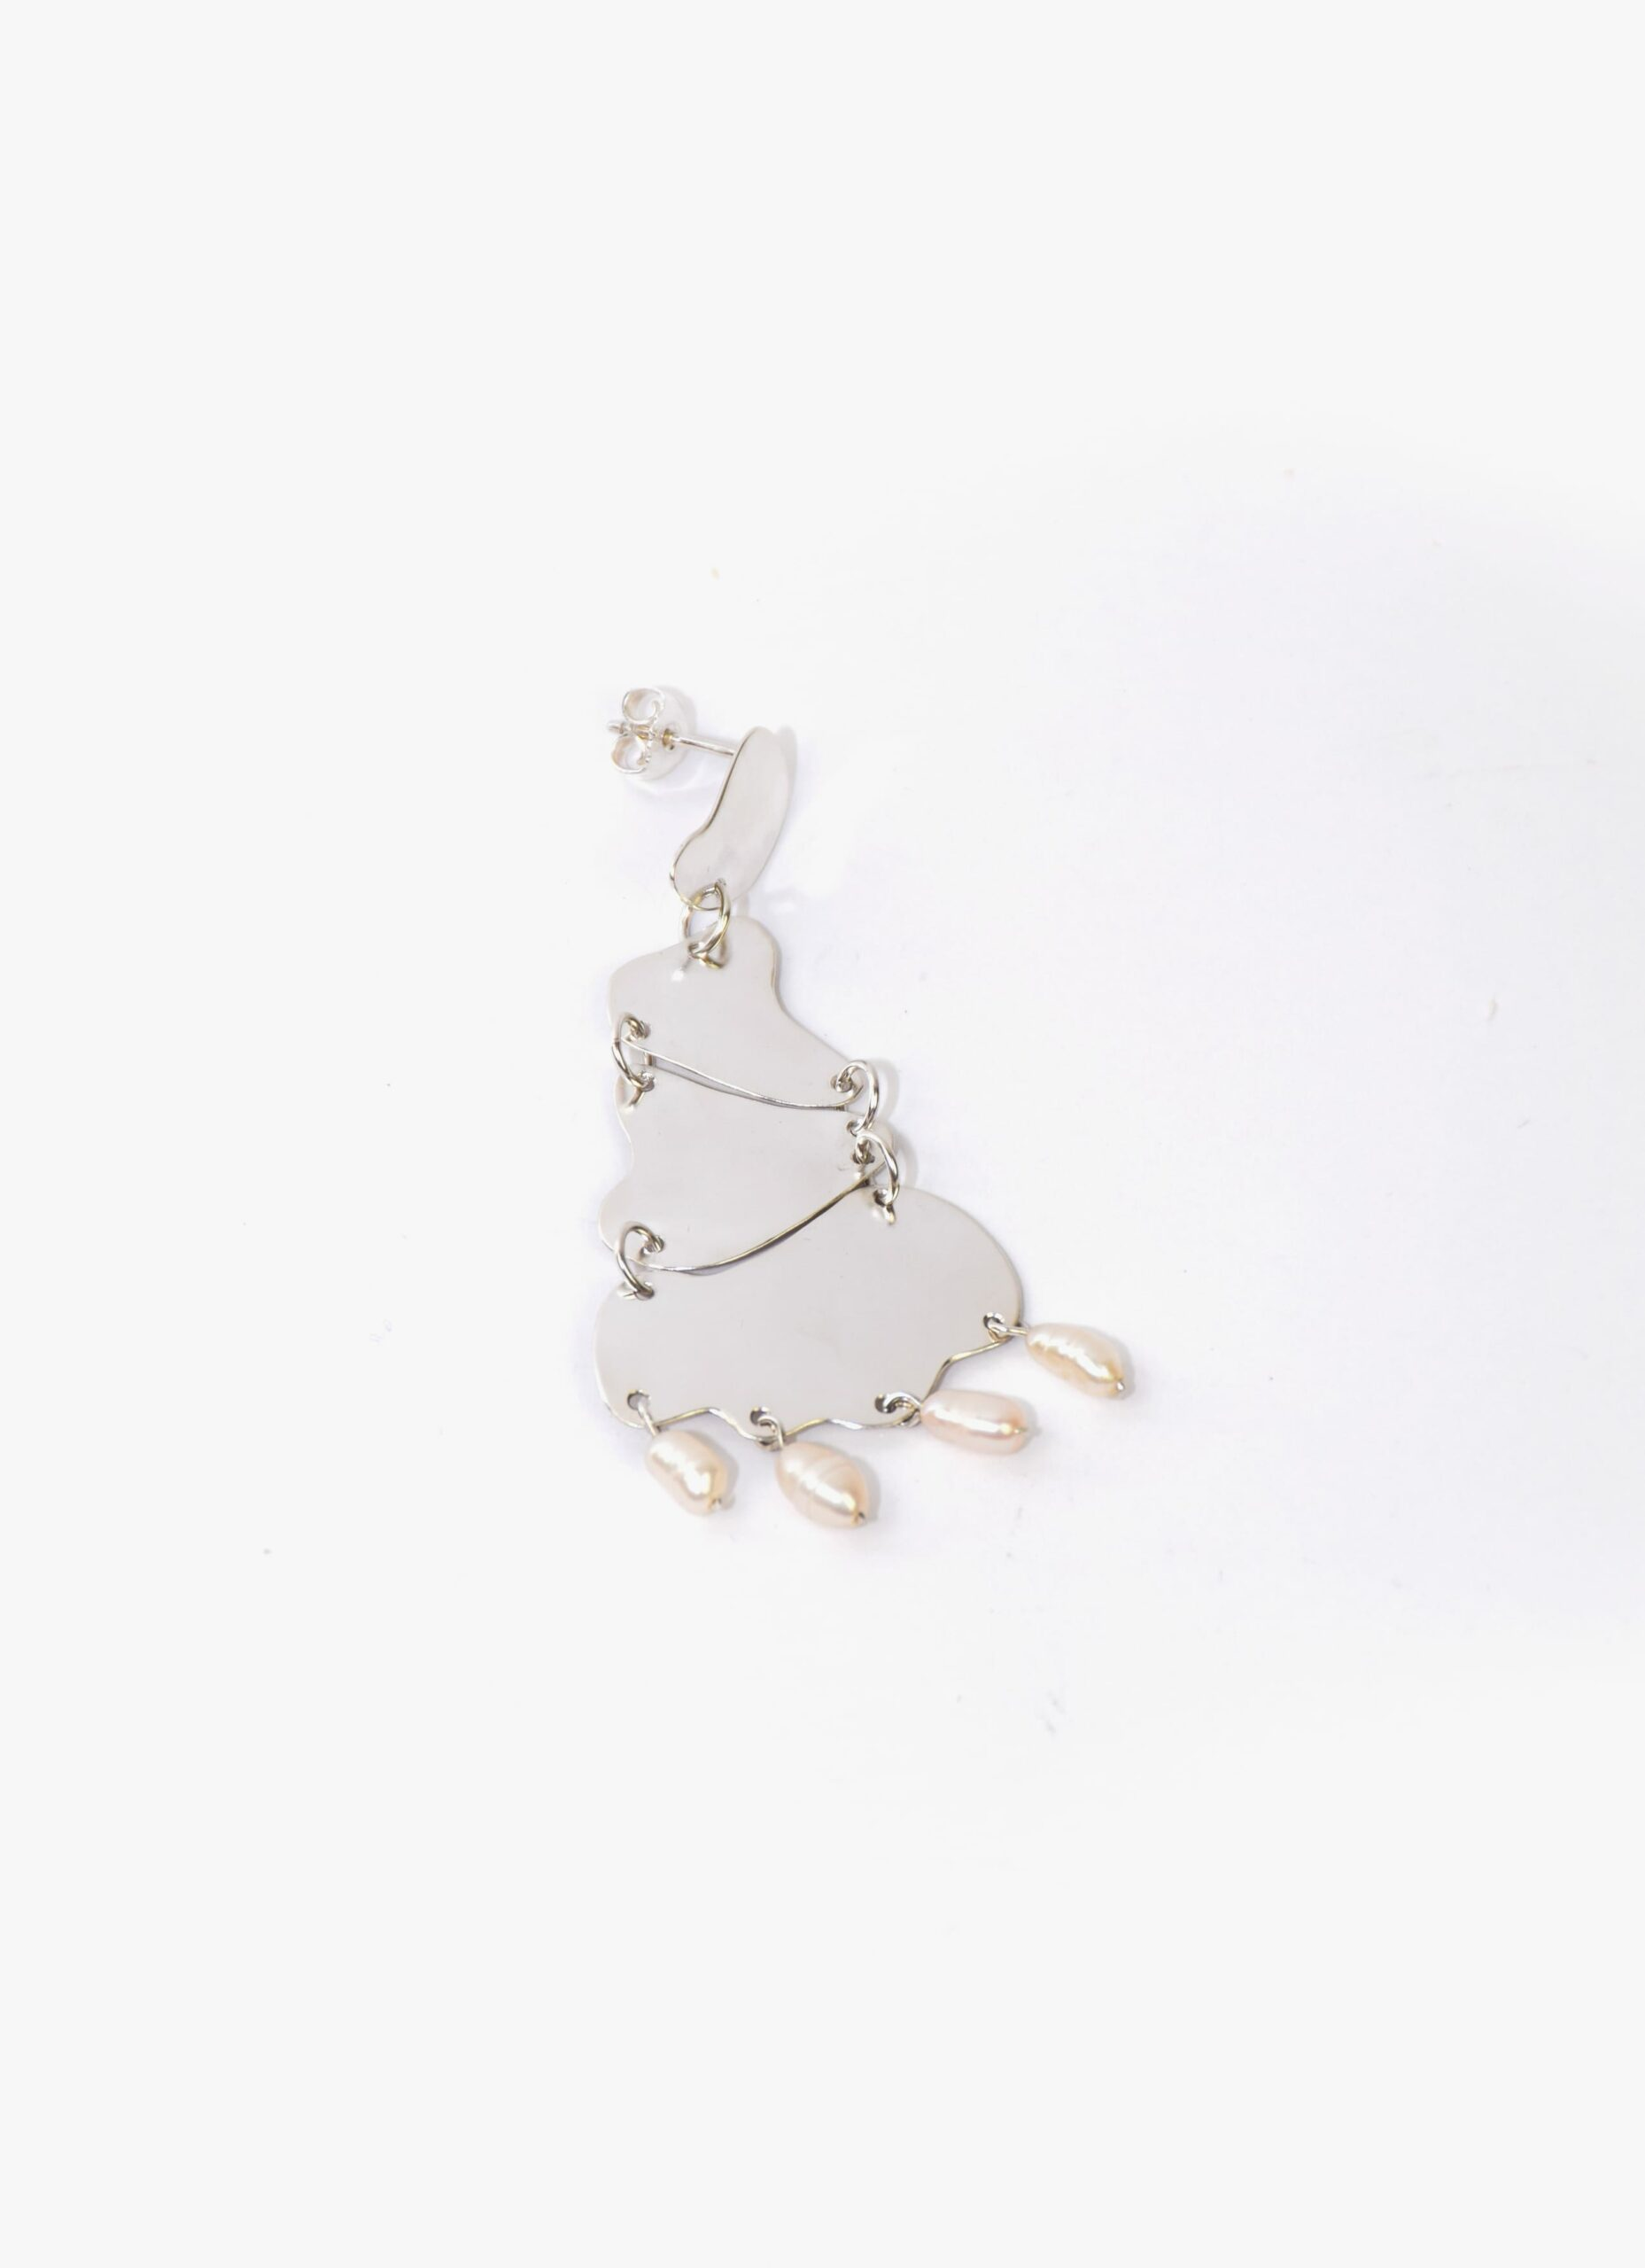 Oni Studio - Roshan Earring - Recycled silver